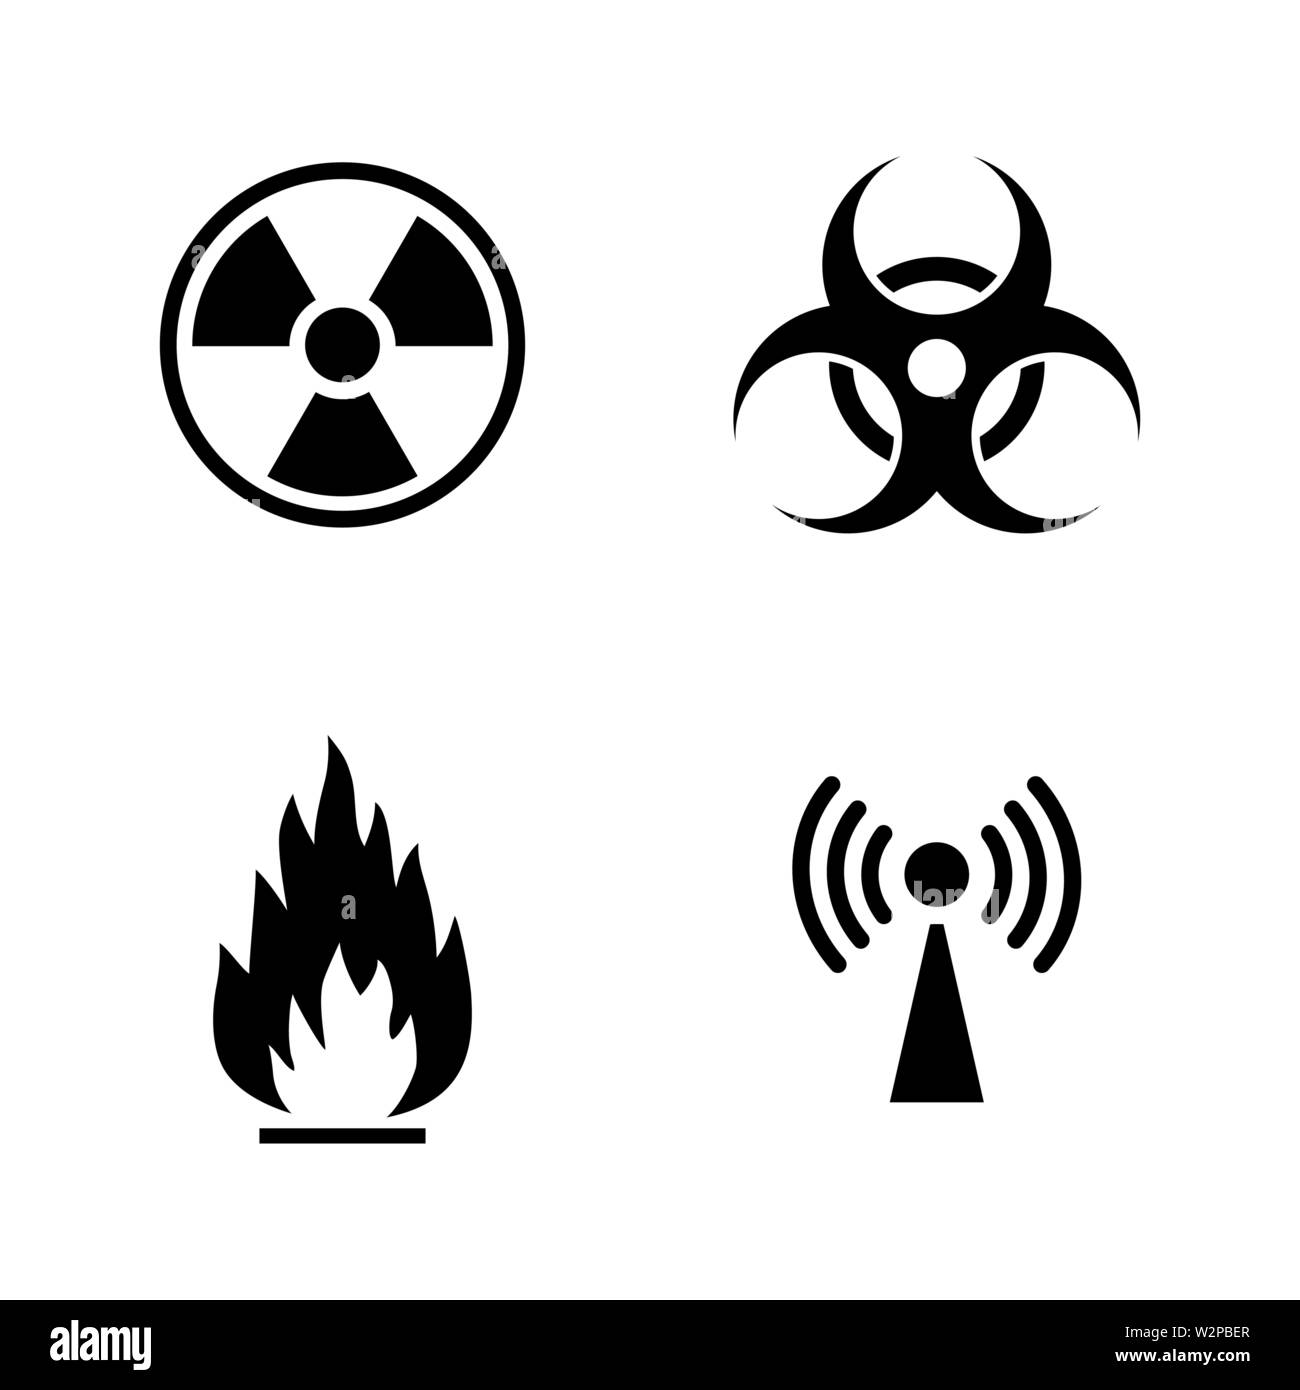 Danger. Simple Related Vector Icons Set for Video, Mobile Apps, Web Sites, Print Projects and Your Design. Black Flat Illustration on White Background - Stock Vector